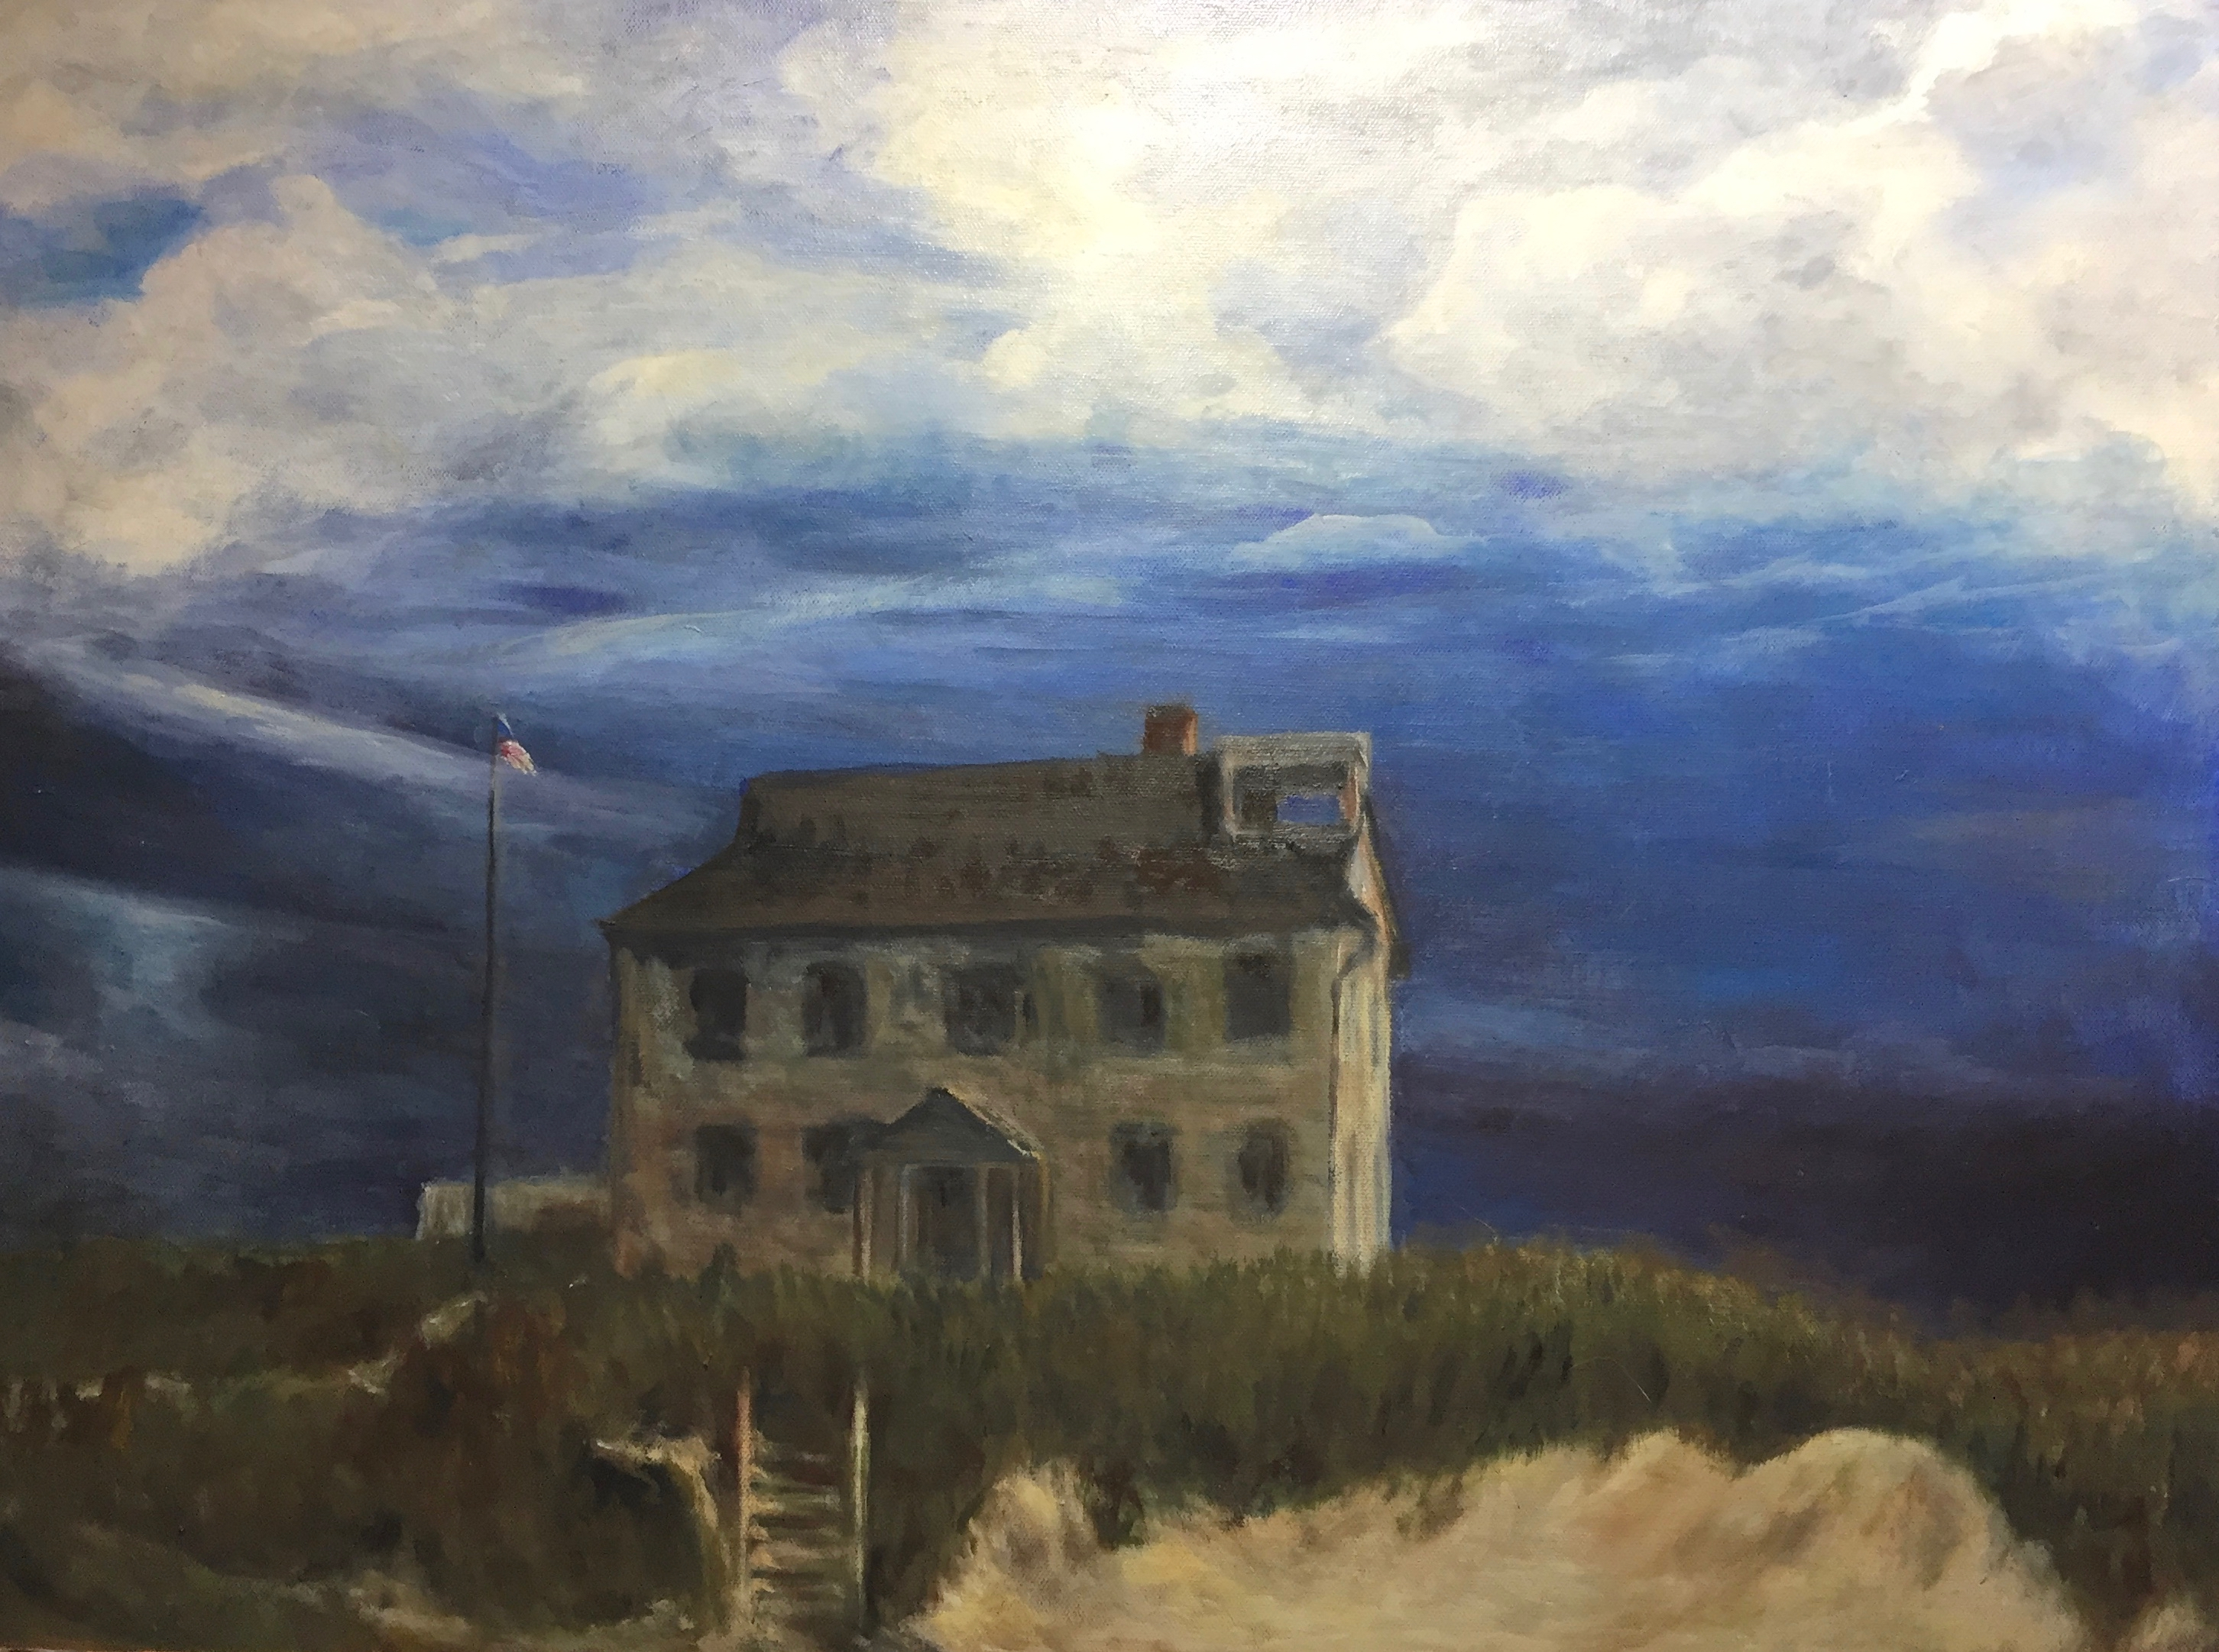 Coast Guard Station at Race Point